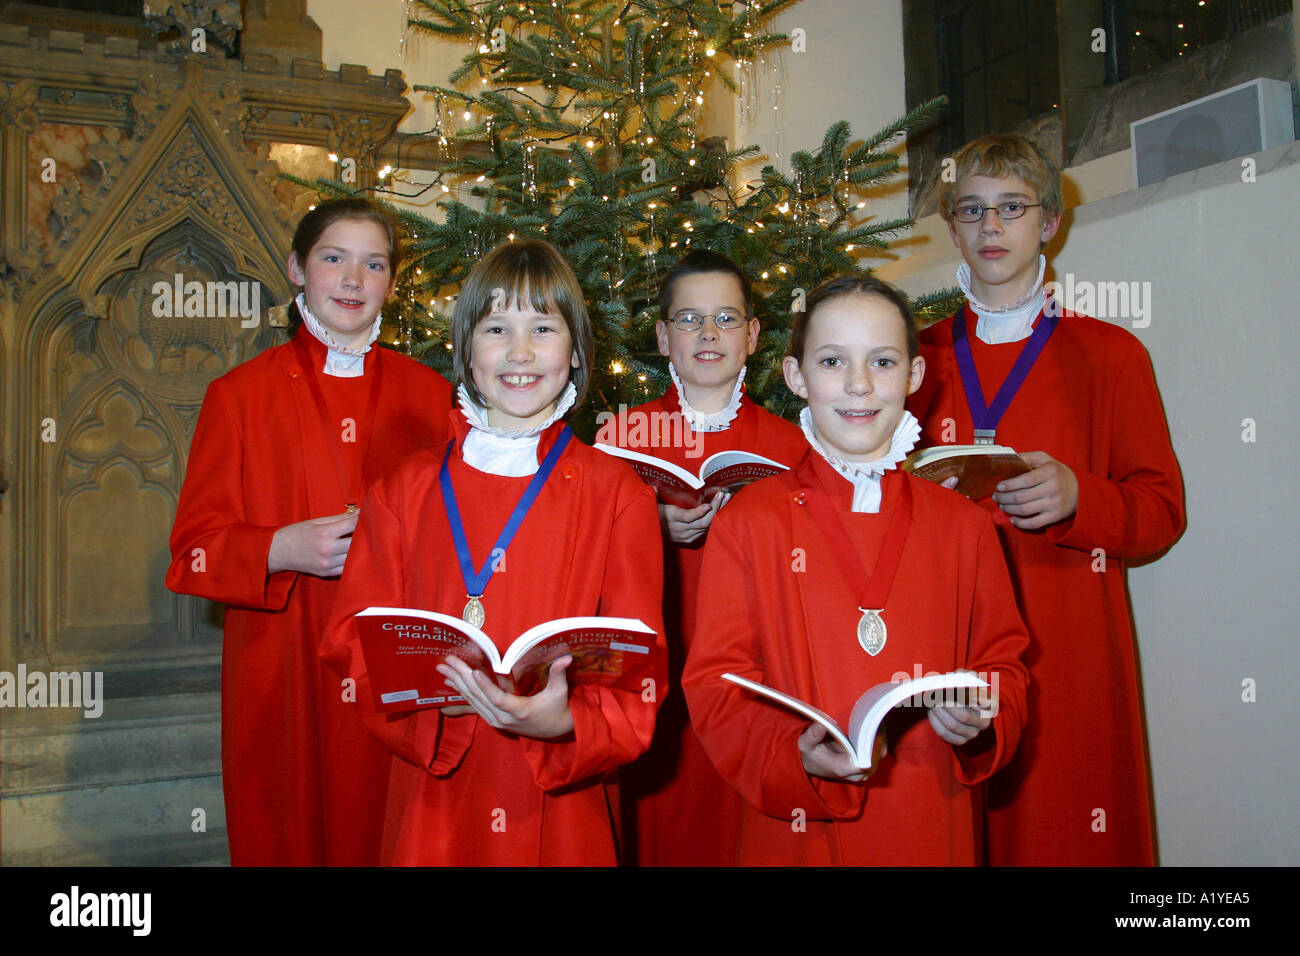 Mixed Choir of St Edward the Confessor Church Romford Essex - Stock Image